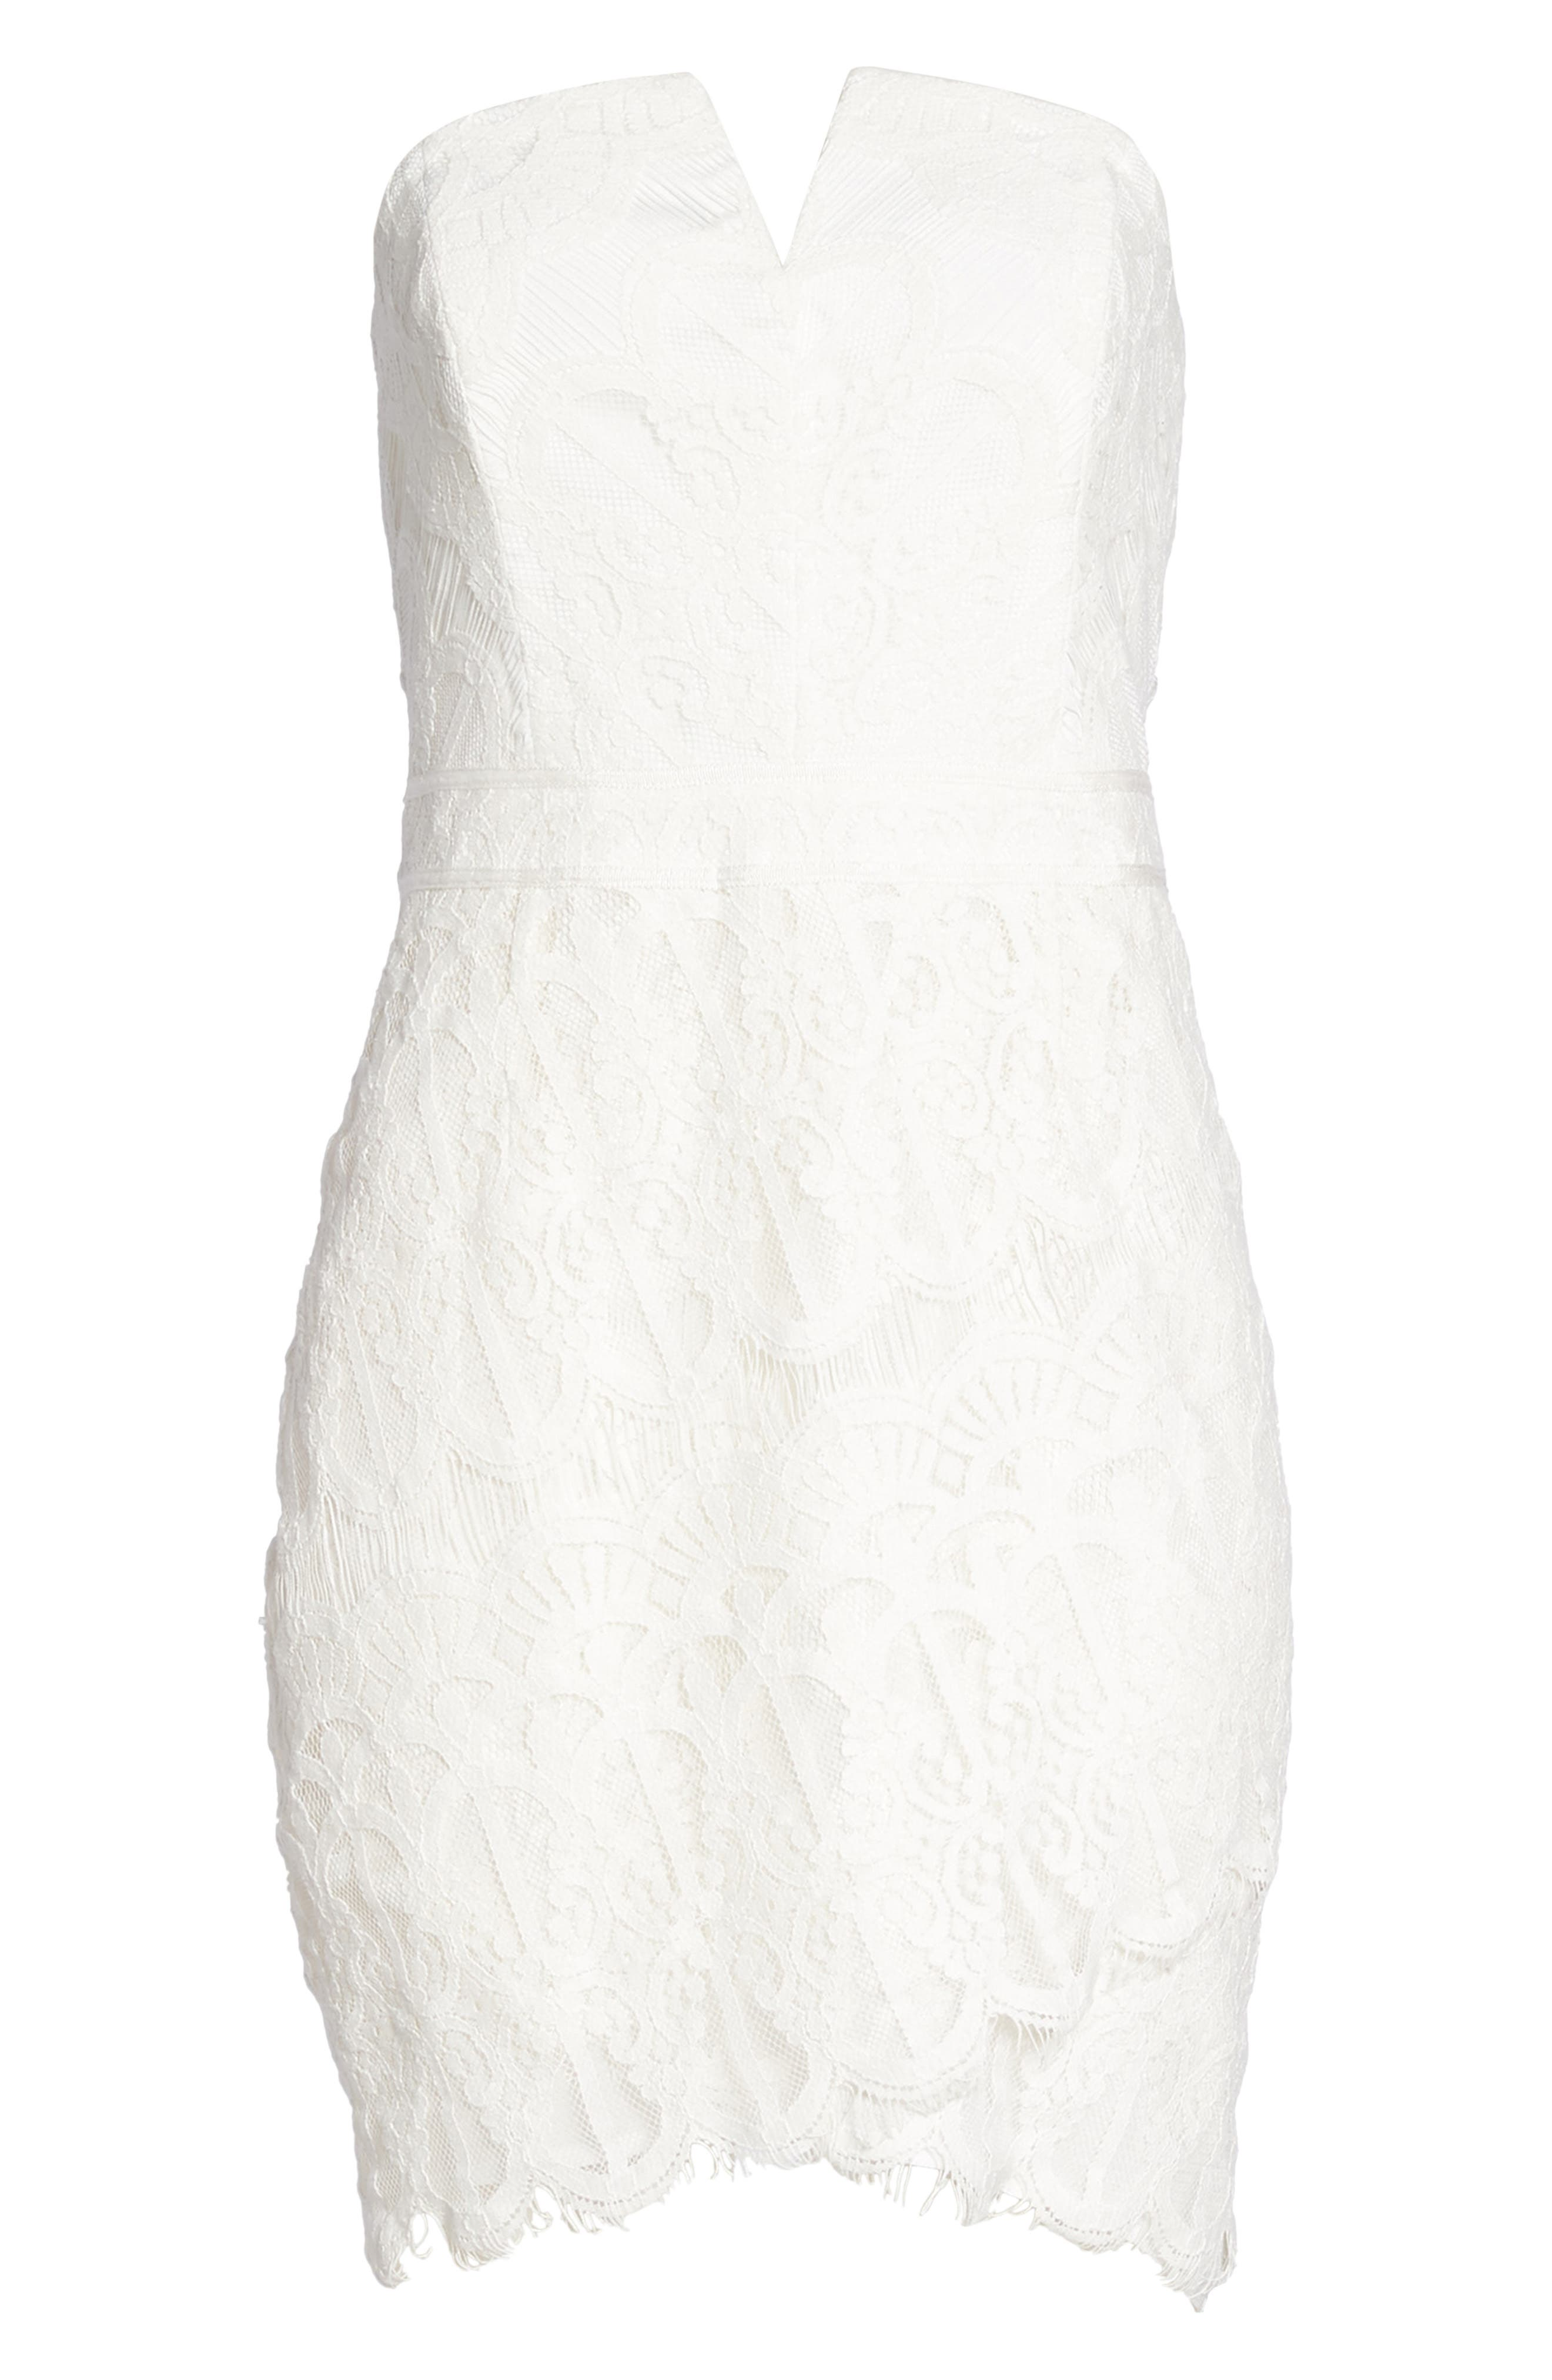 Strapless Lace Dress,                             Alternate thumbnail 7, color,                             White